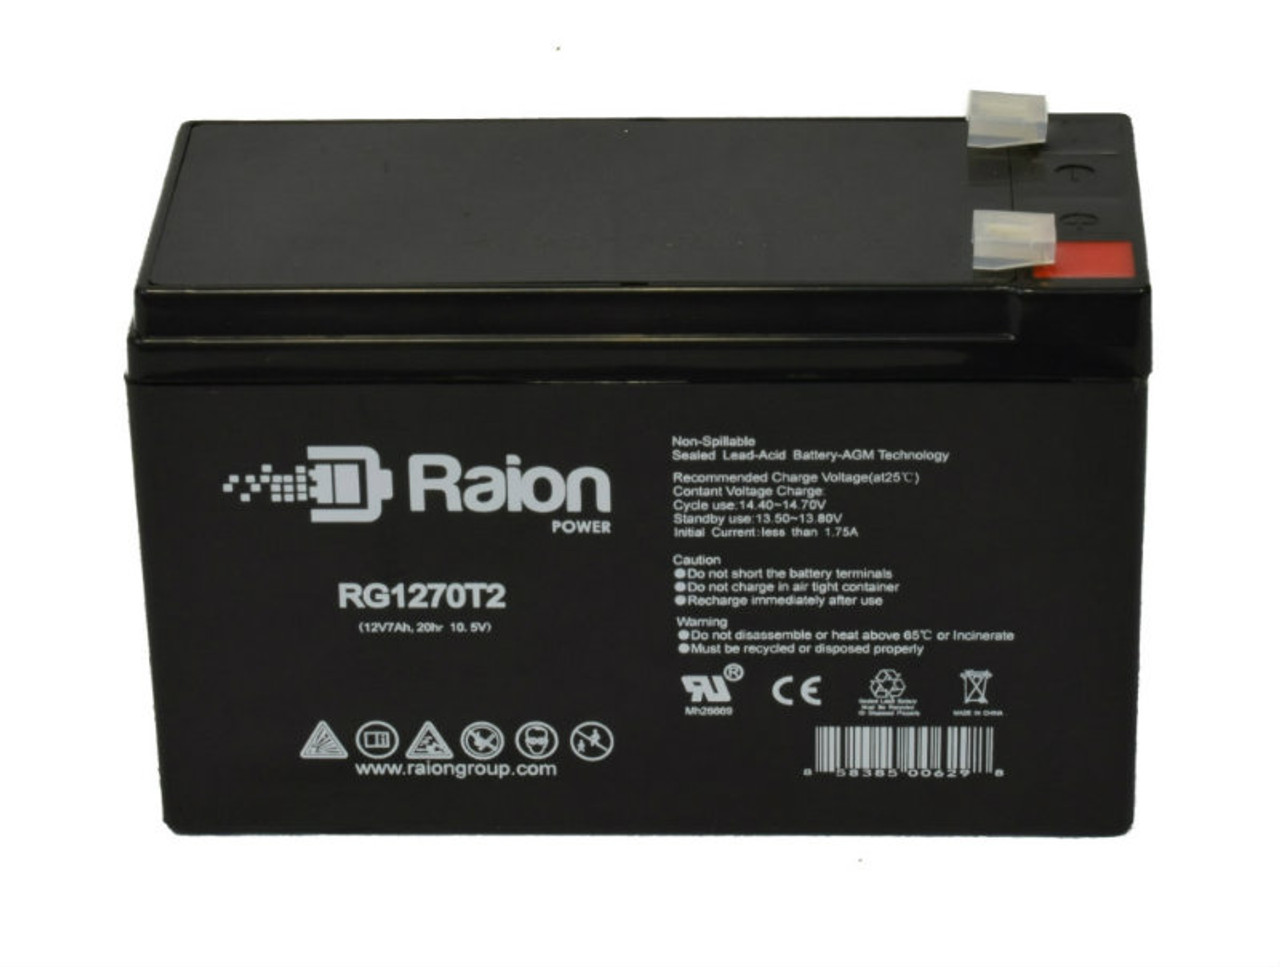 Raion Power 12V 7Ah SLA Battery With T1 Terminals For Consent Battery GS127